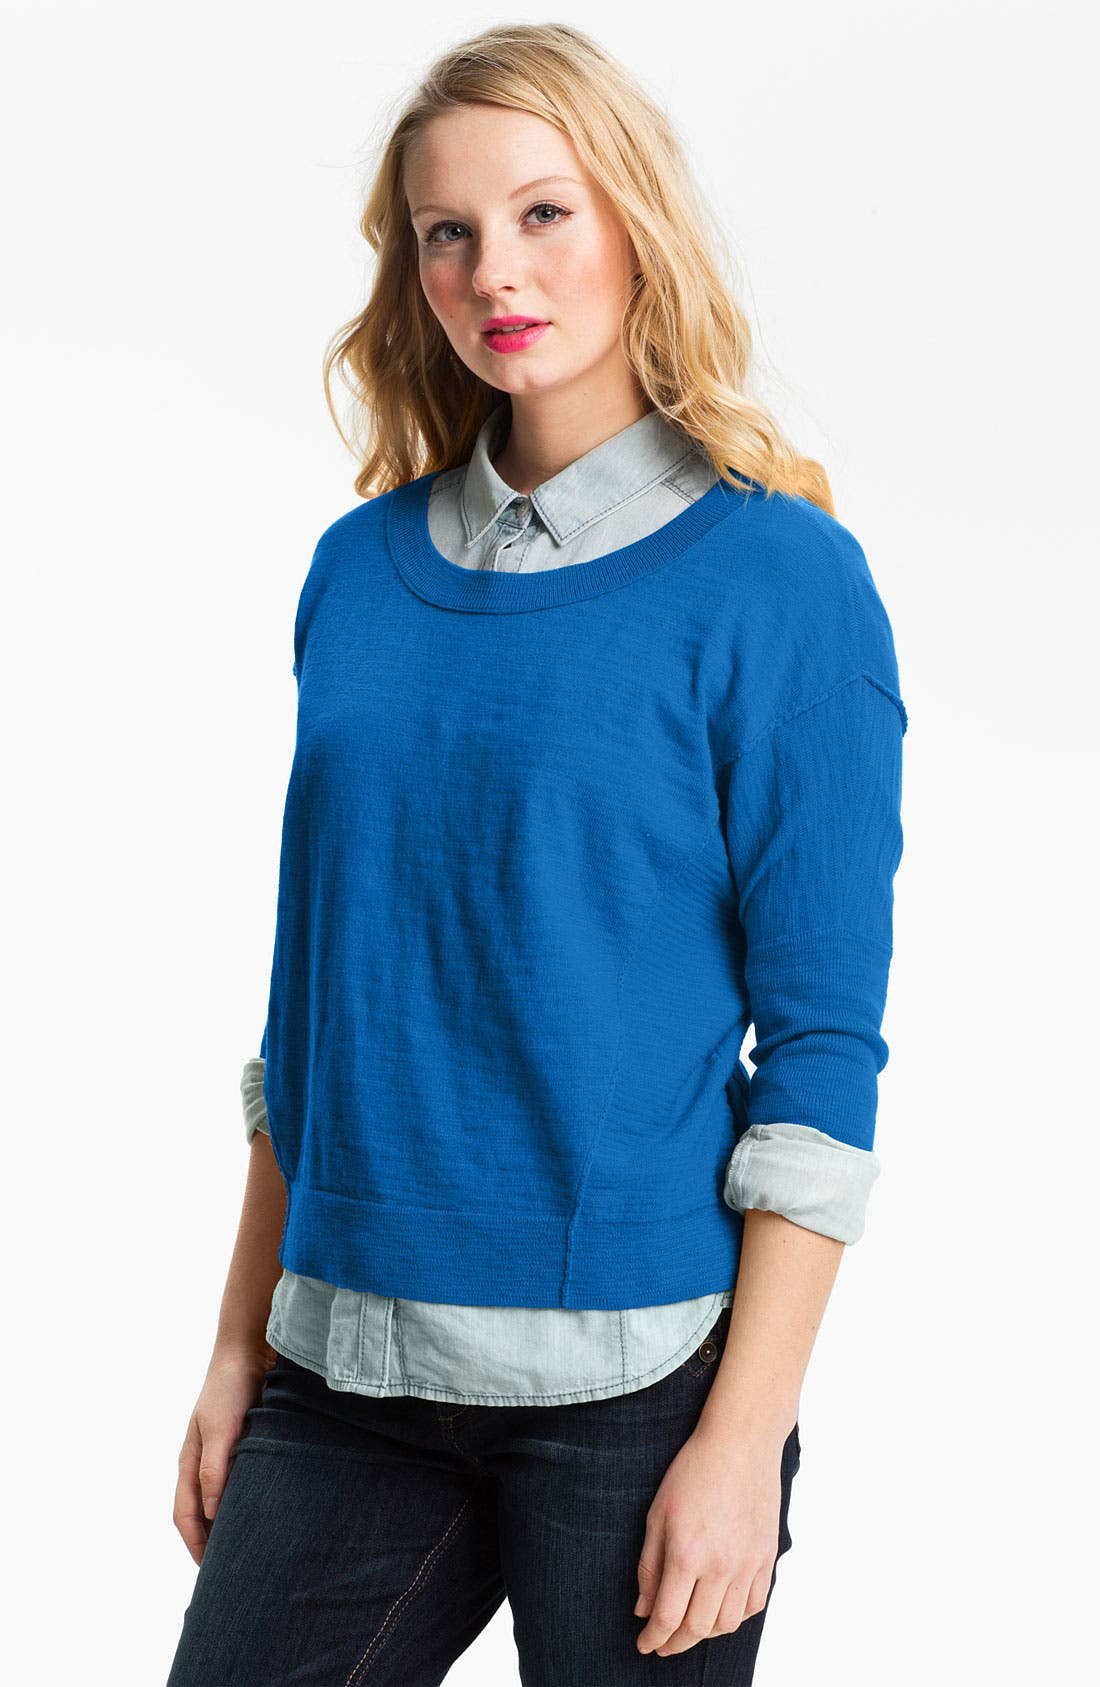 Alternate Image 1 Selected - Caslon® Slub Crewneck Sweater (Petite)